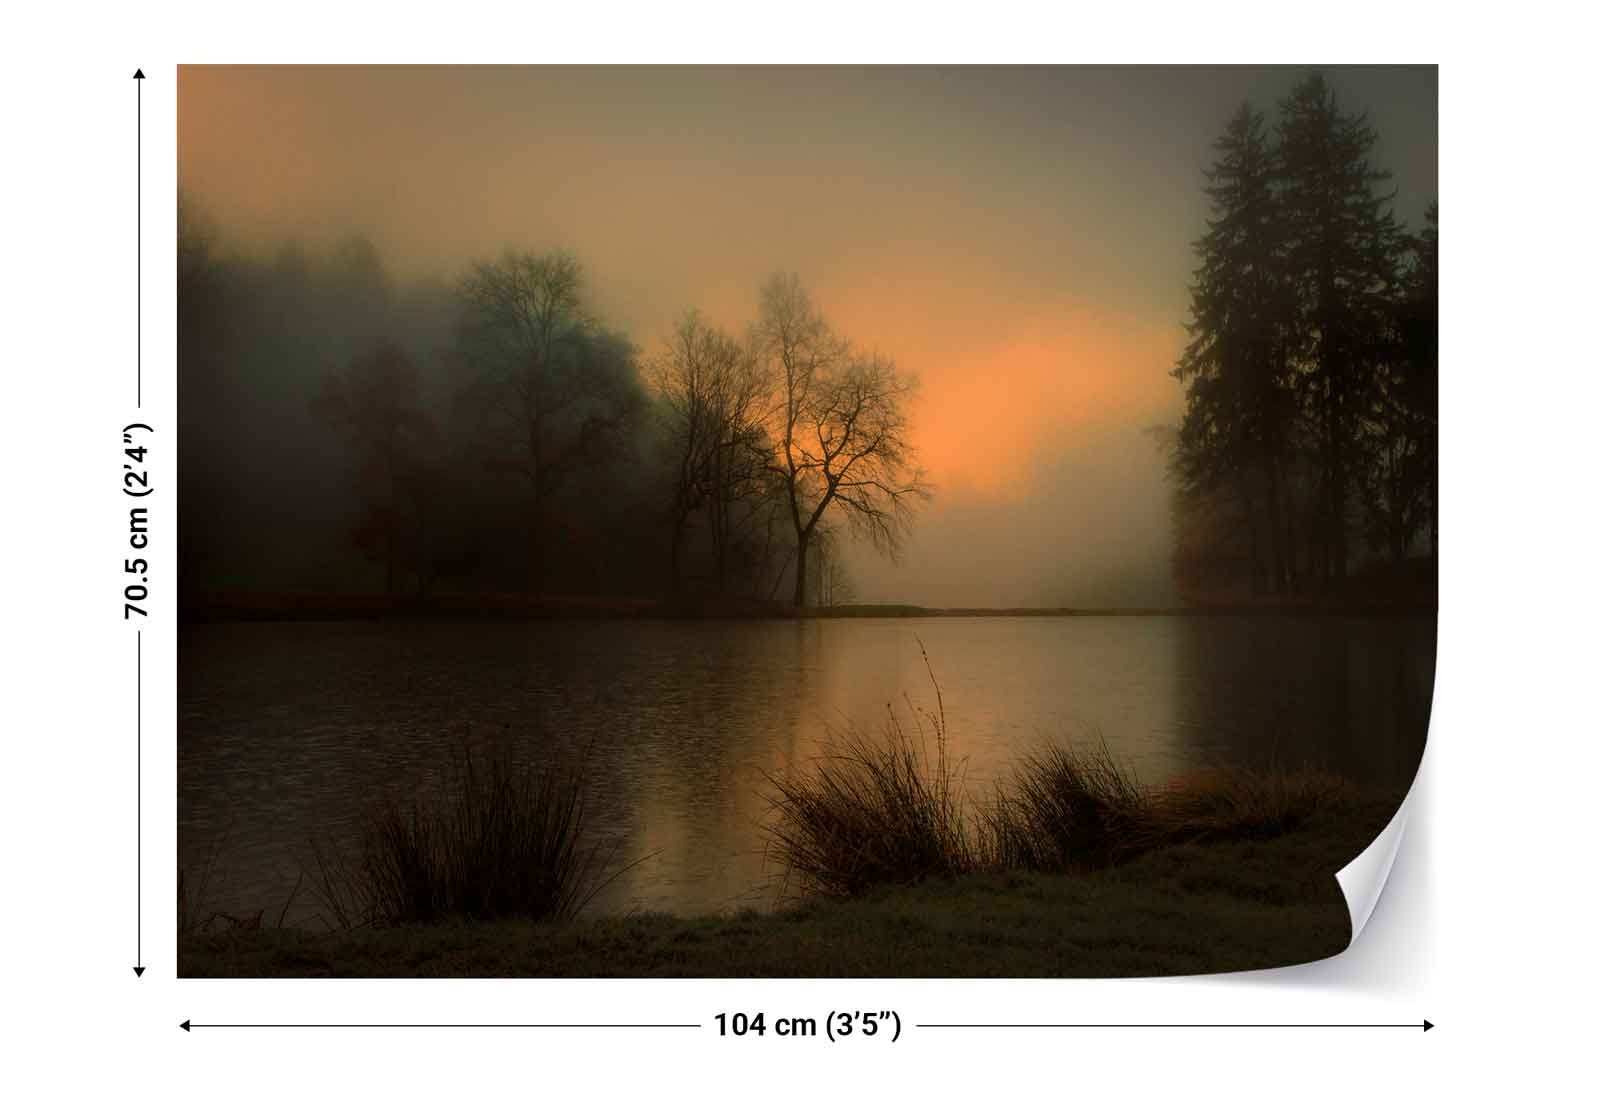 wald teich b ume nebel landschaft vlies fototapete 1x 1059970 tapete ebay. Black Bedroom Furniture Sets. Home Design Ideas